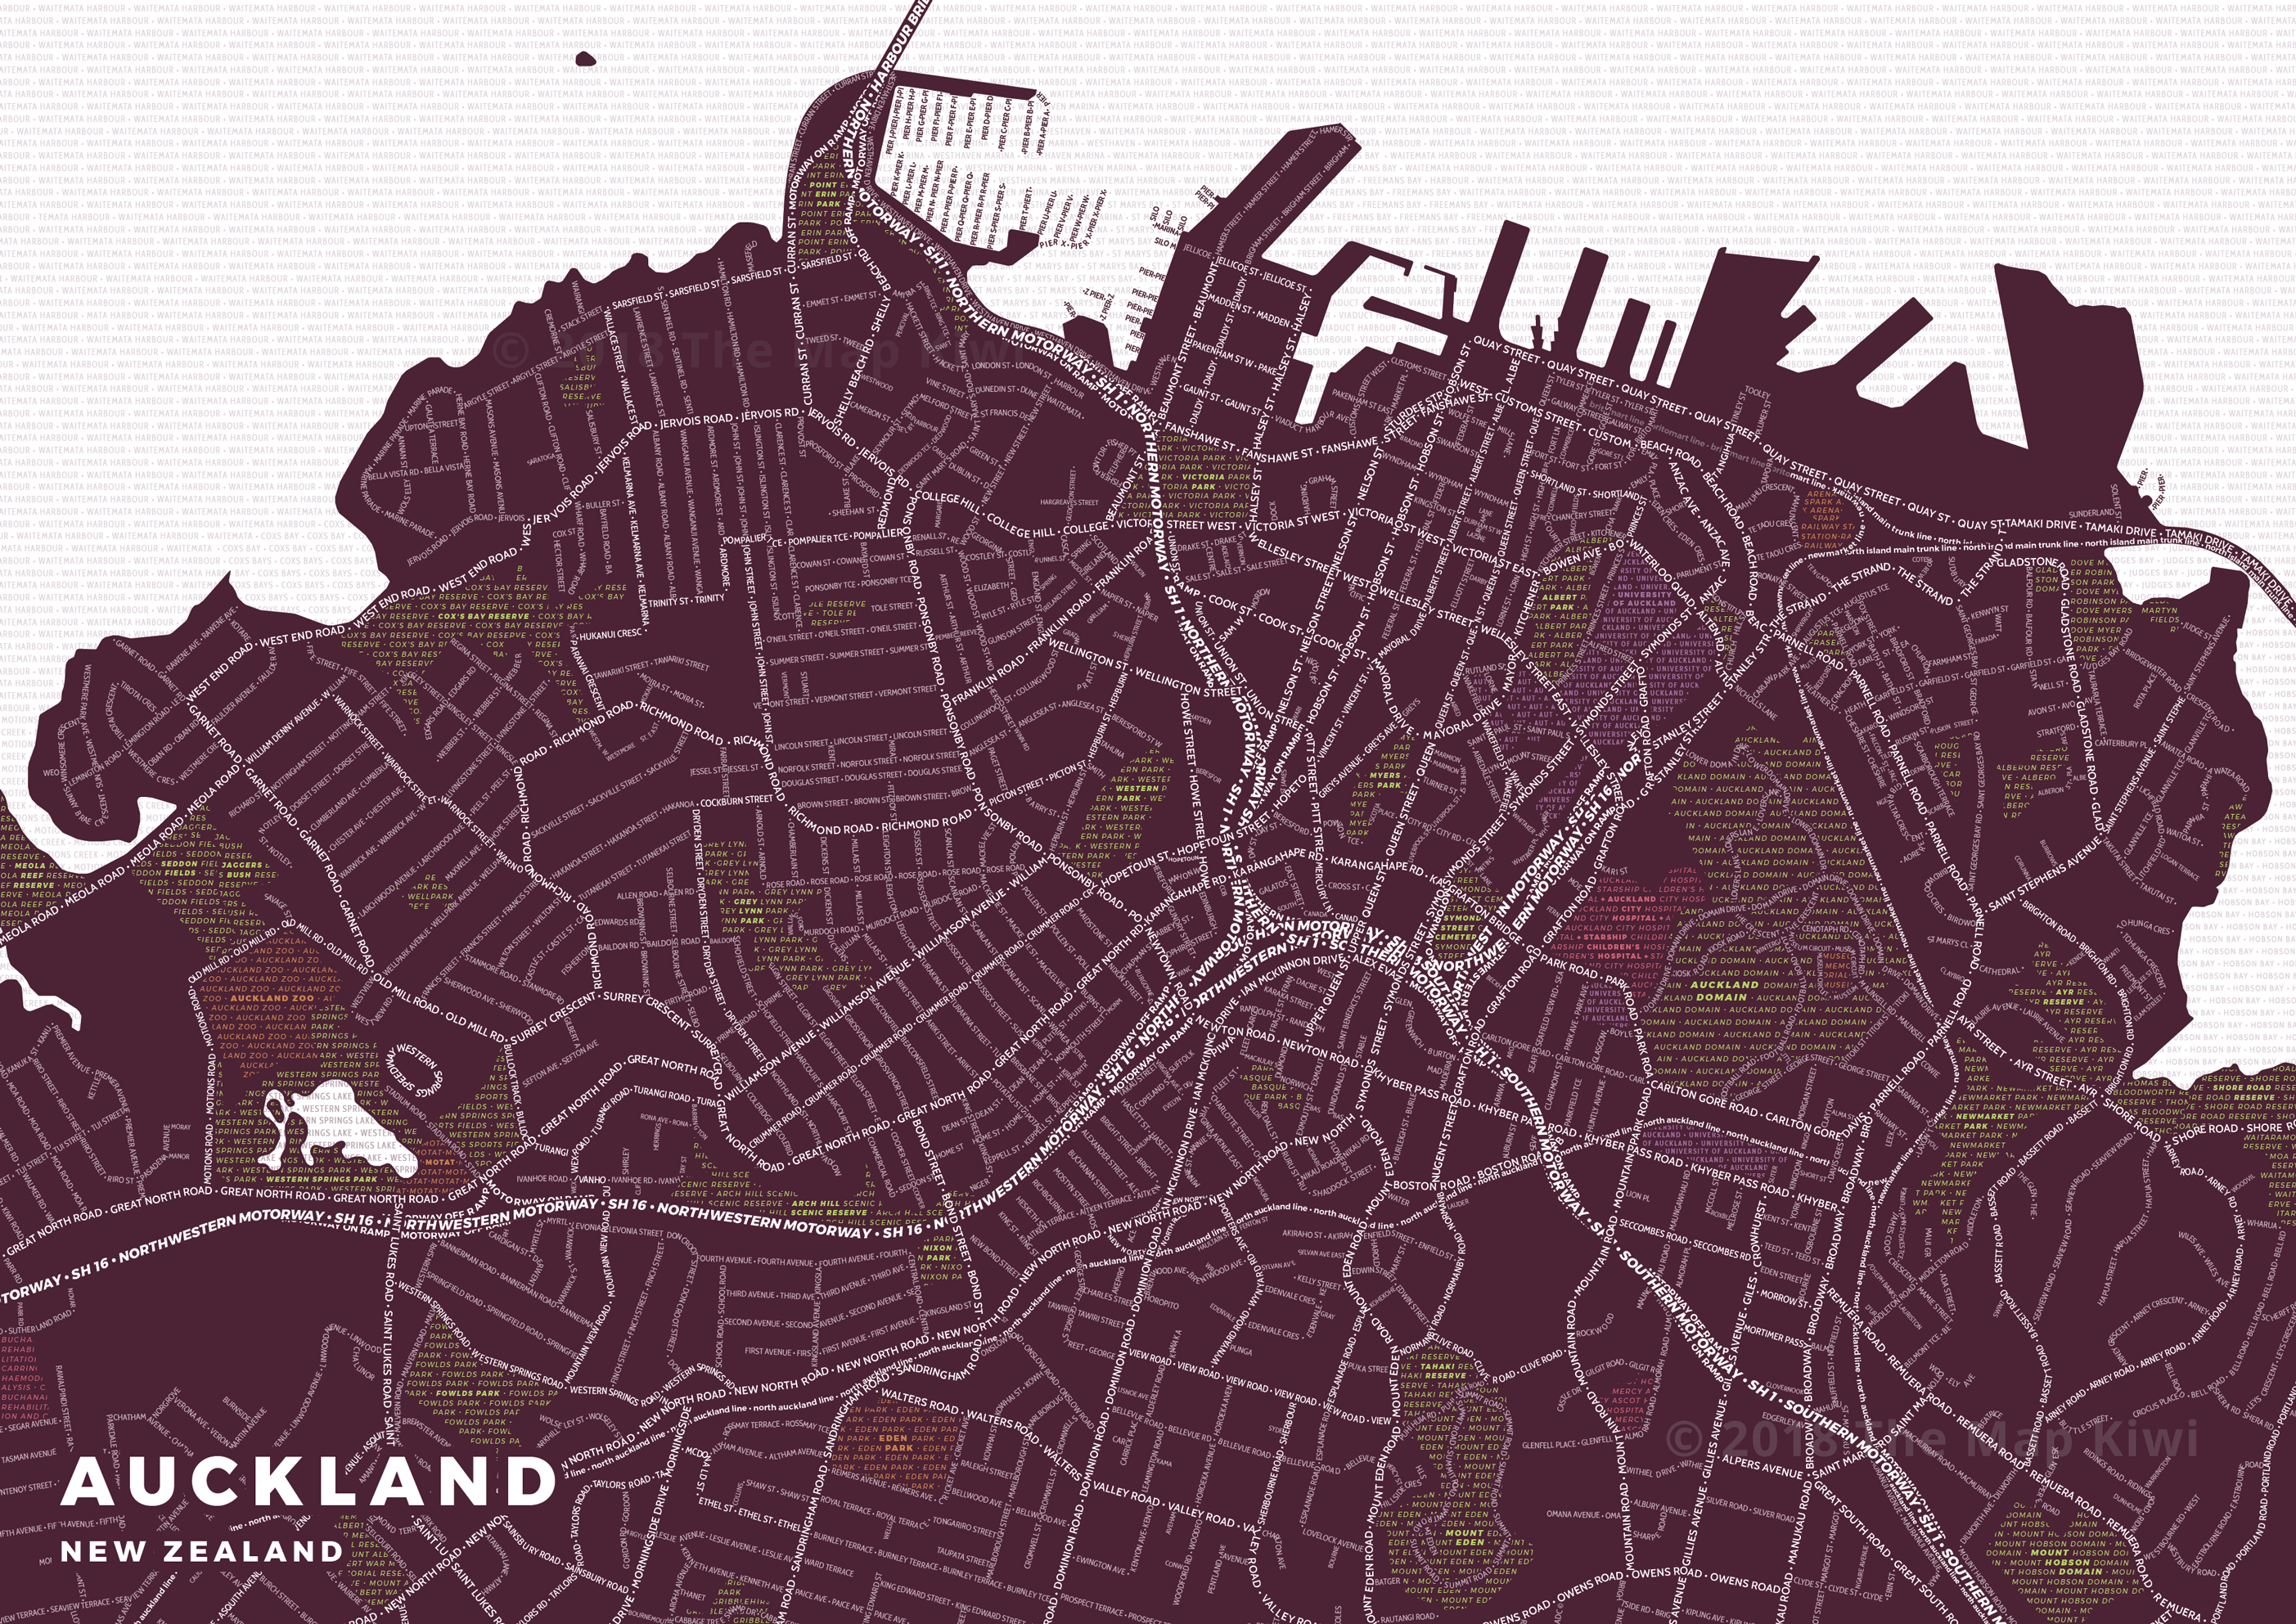 New Print: Typography Map of Auckland | The Map Kiwi on islamabad map, tasmania map, christchurch map, australia map, brisbane map, fiji map, cook strait map, southern alps map, jakarta on map, hong kong map, omc map, temuka map, north island map, sydney on map, micronesia map, wellington map, perth map, new south wales map, darwin map, melbourne map,